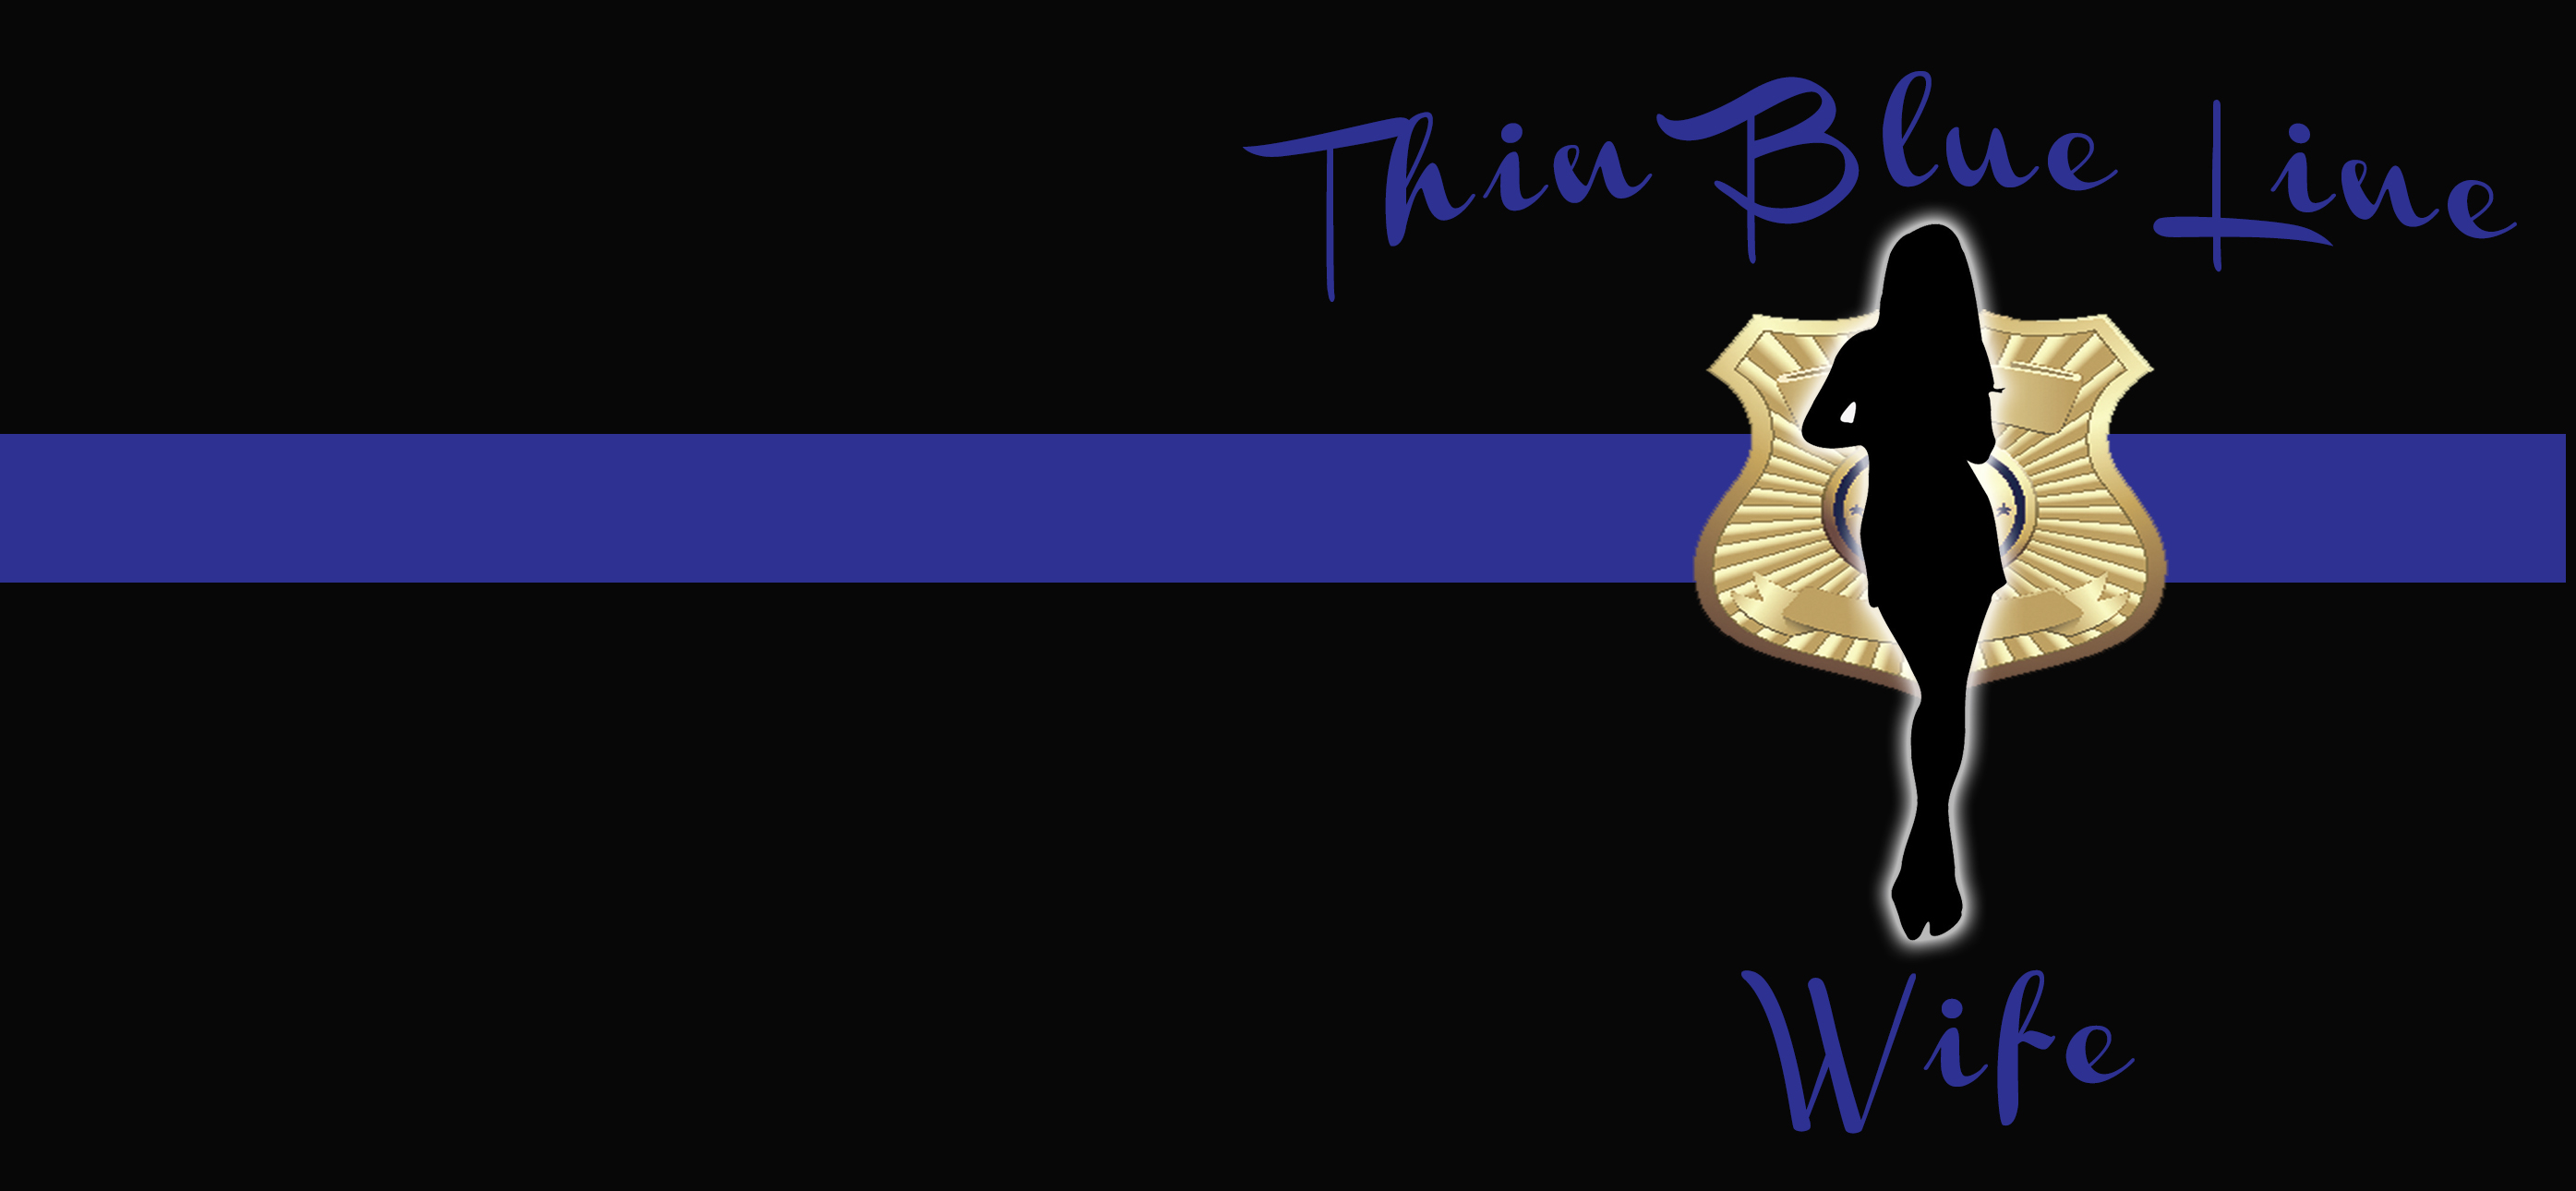 essay on the thin blue line